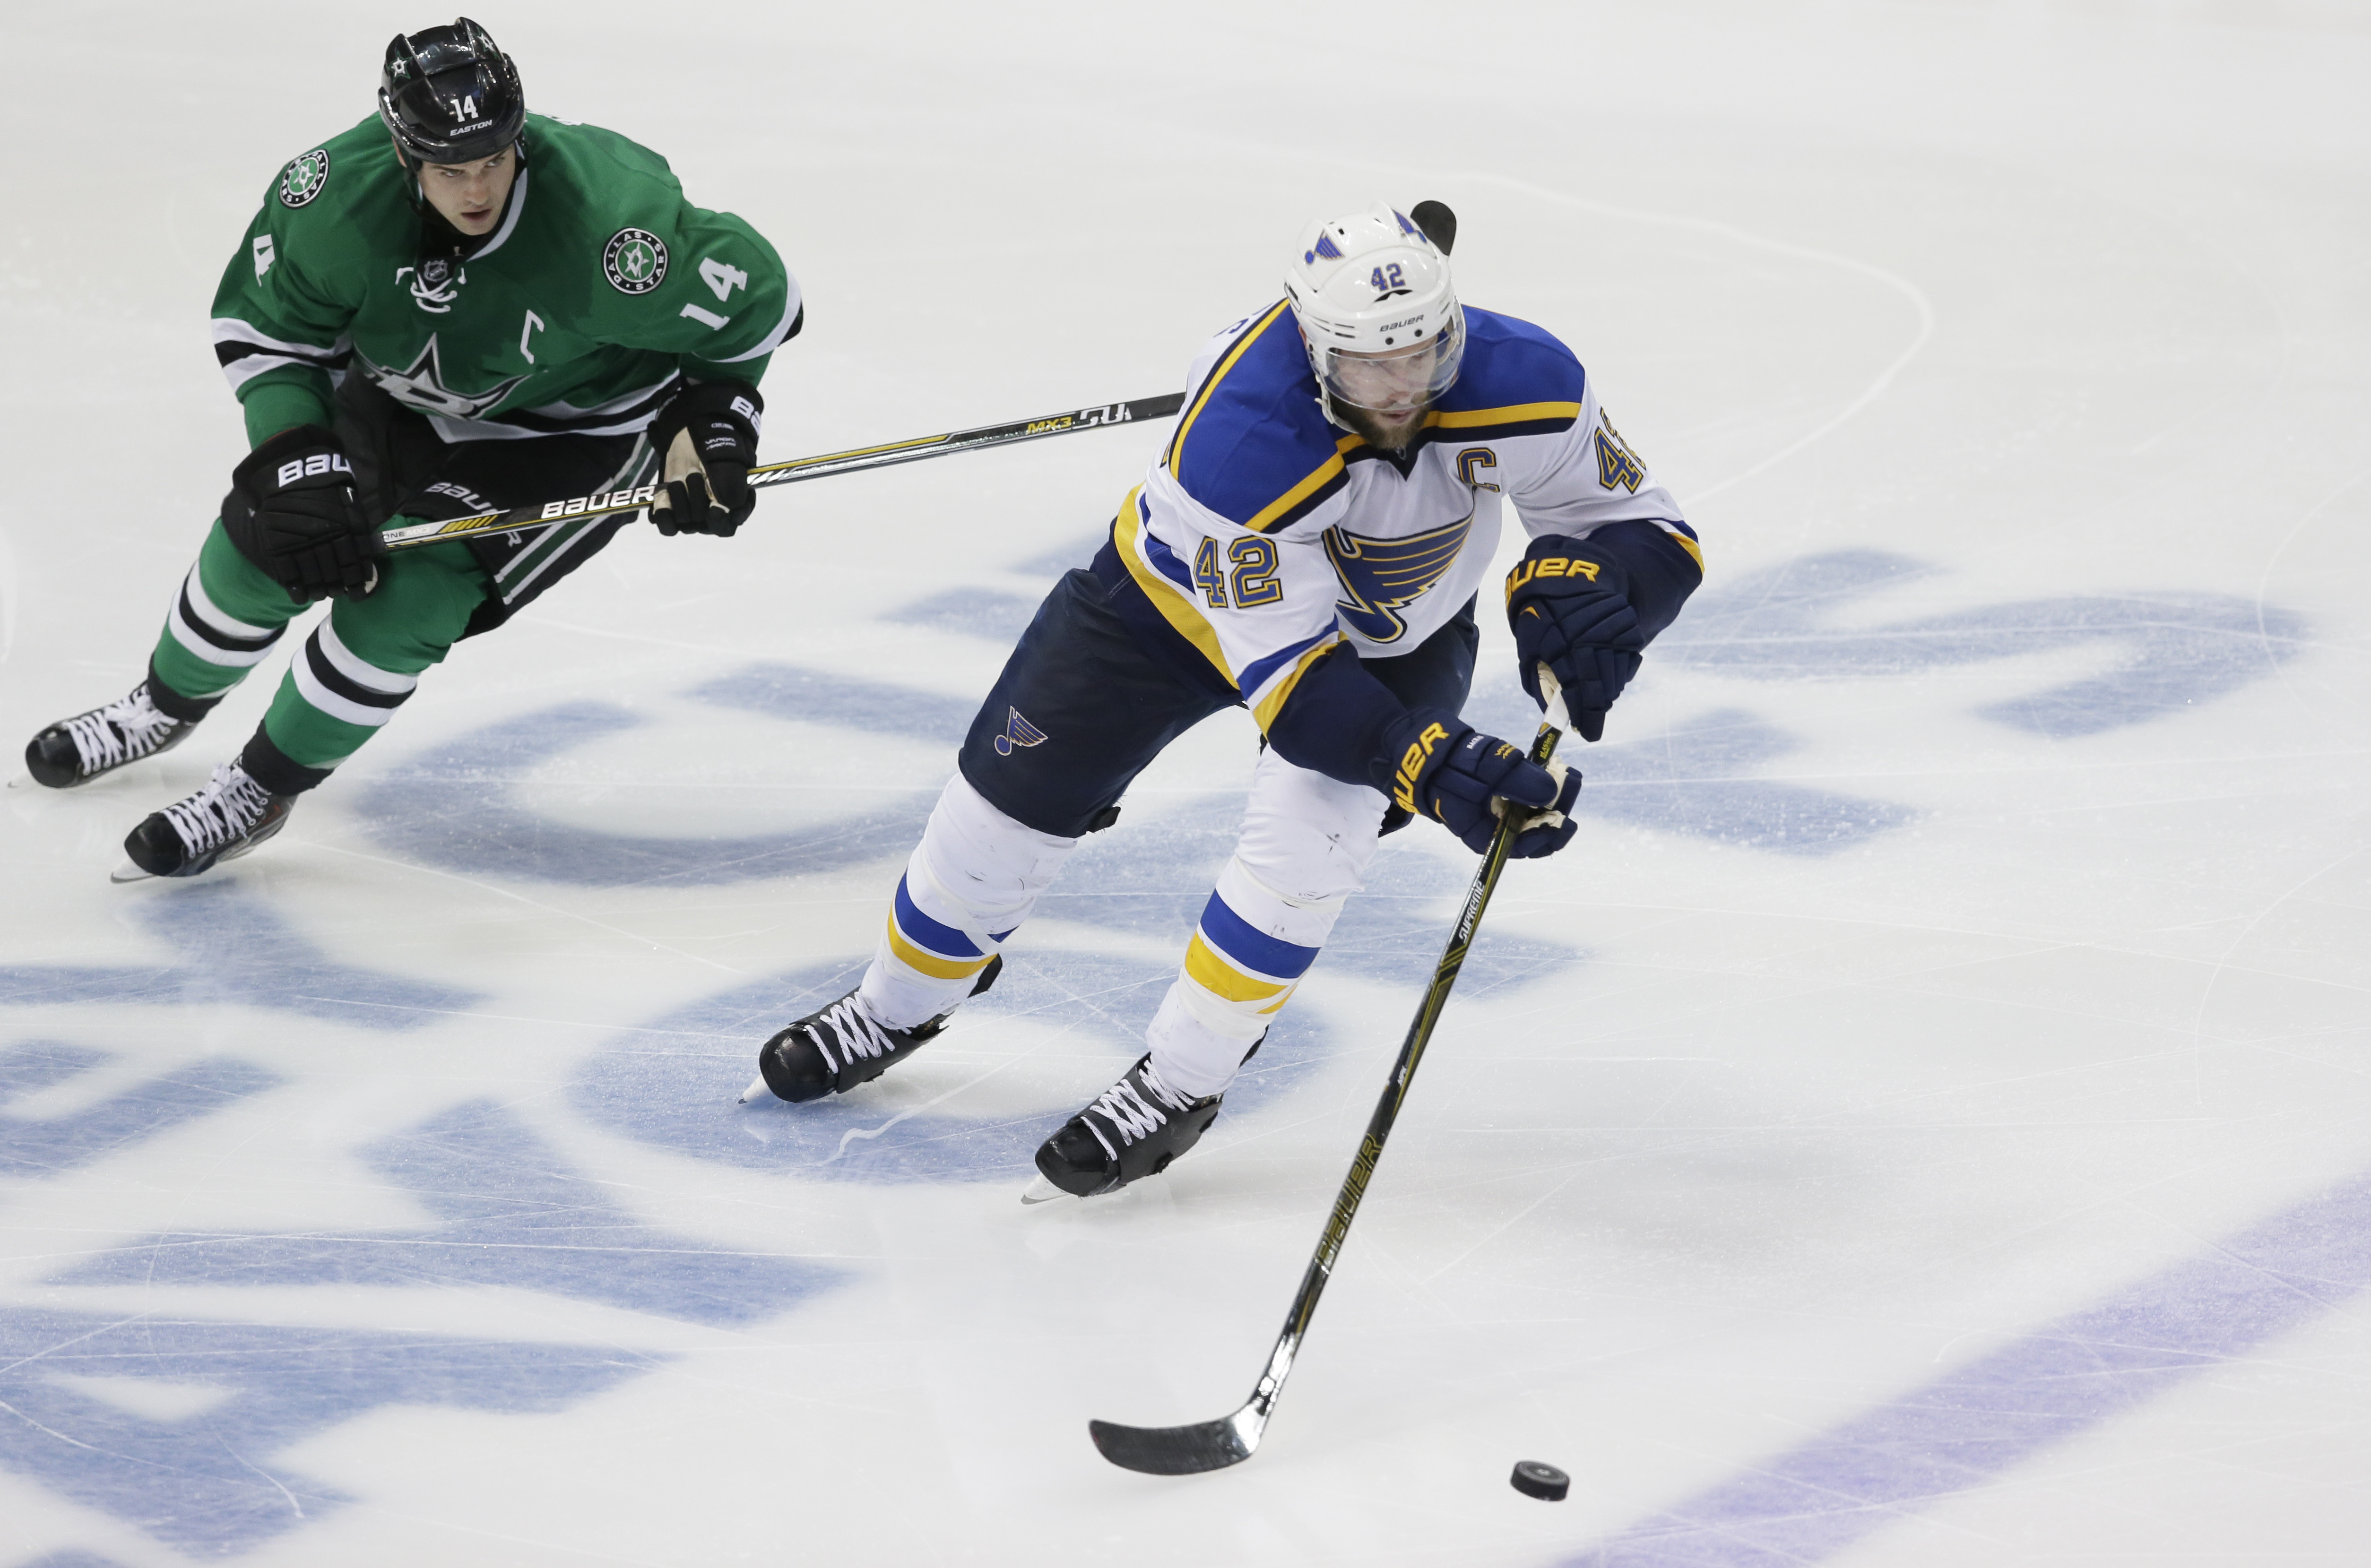 St. Louis Blues center David Backes (42) skates with the puck against Dallas Stars left wing Jamie Benn (14) during the third period of Game 7 of the NHL hockey Stanley Cup Western Conference semifinals Wednesday, May 11, 2016, in Dallas. The Blues won 6-